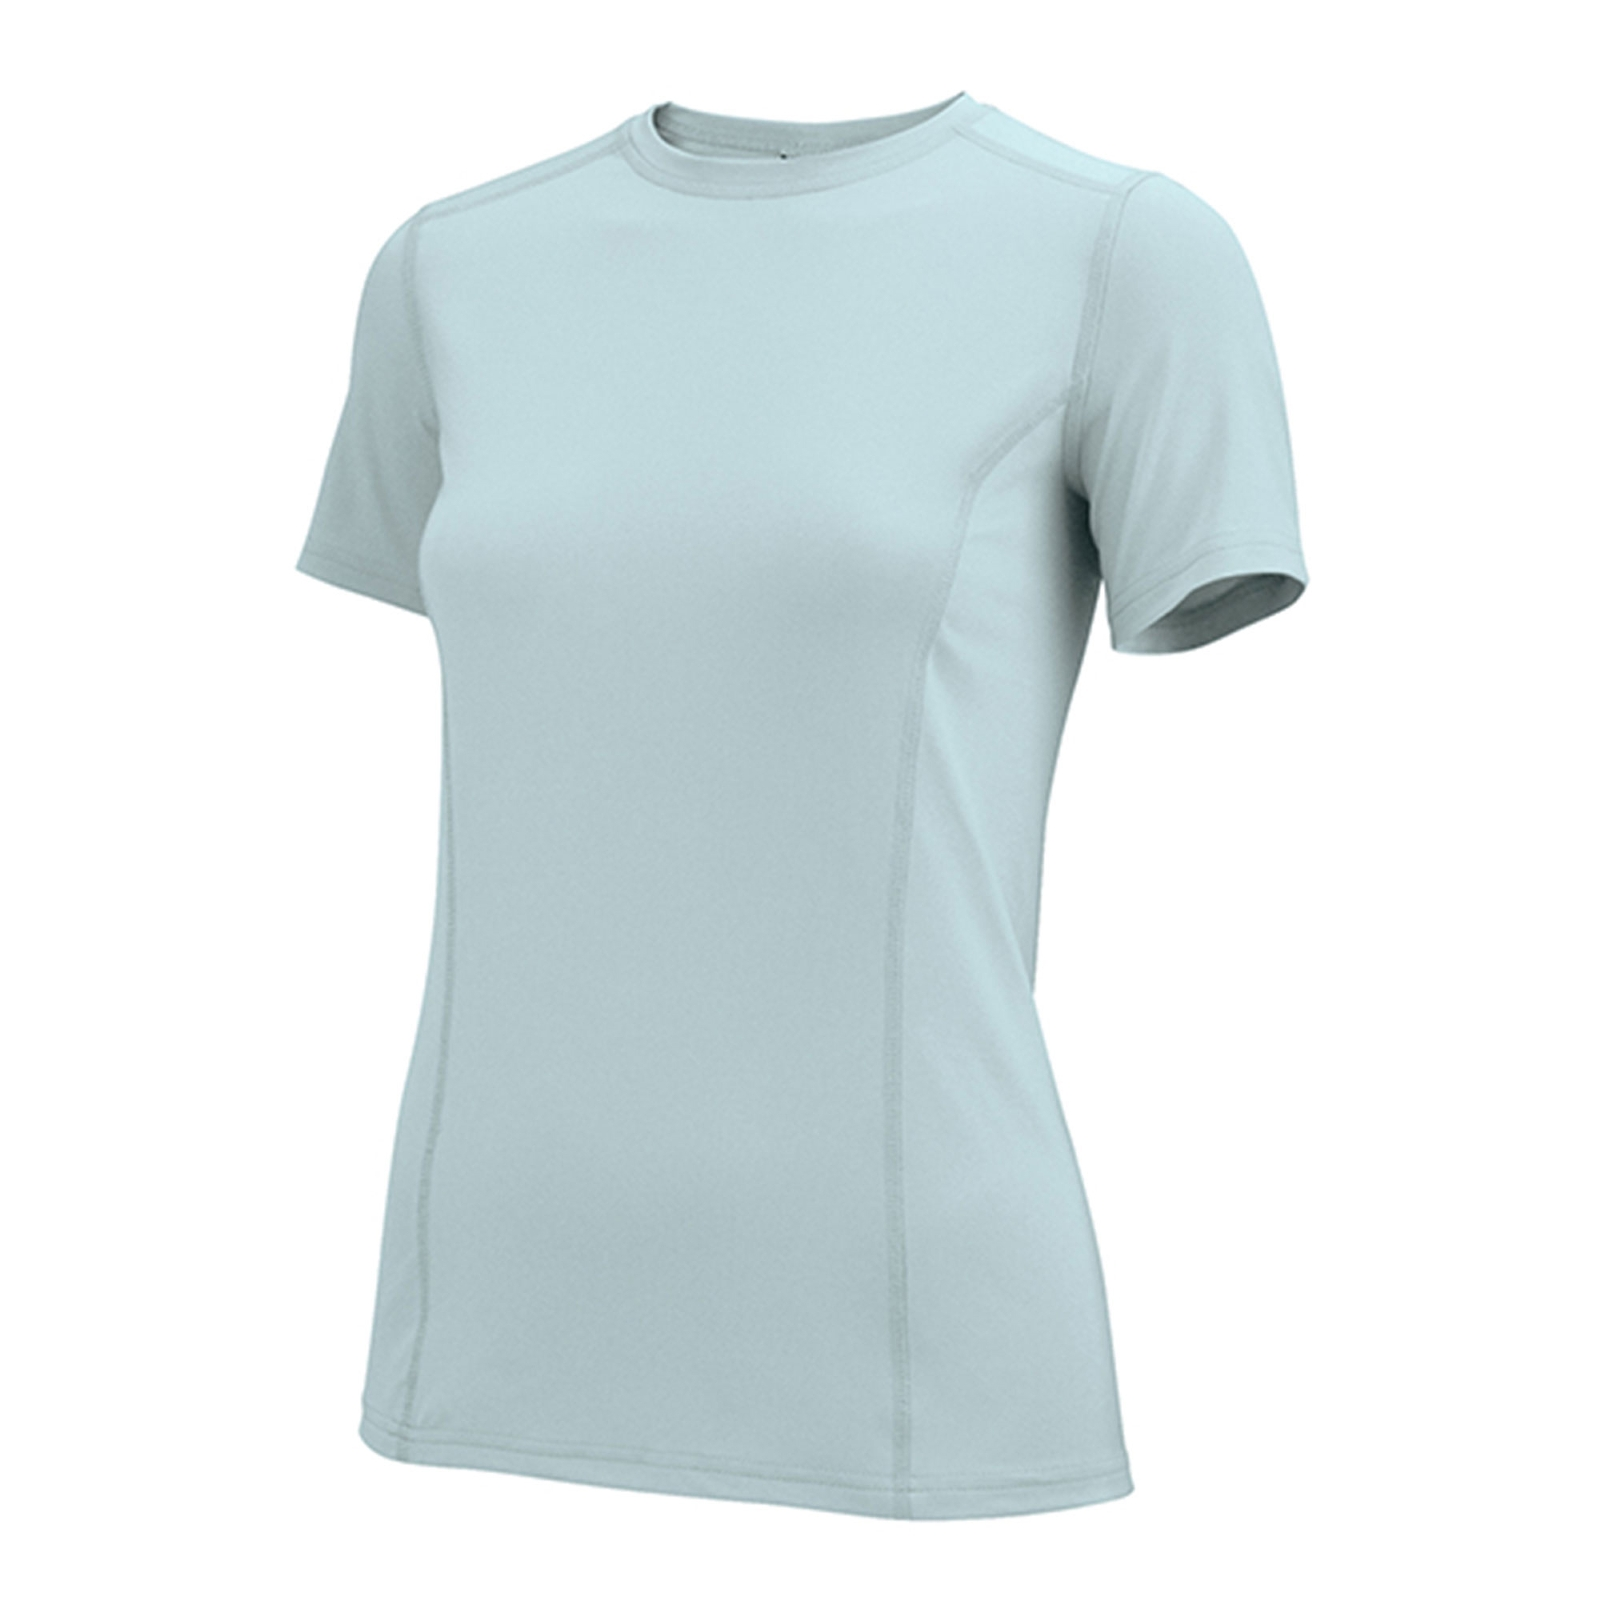 Irideon Performance Silks Short Sleeve Tee